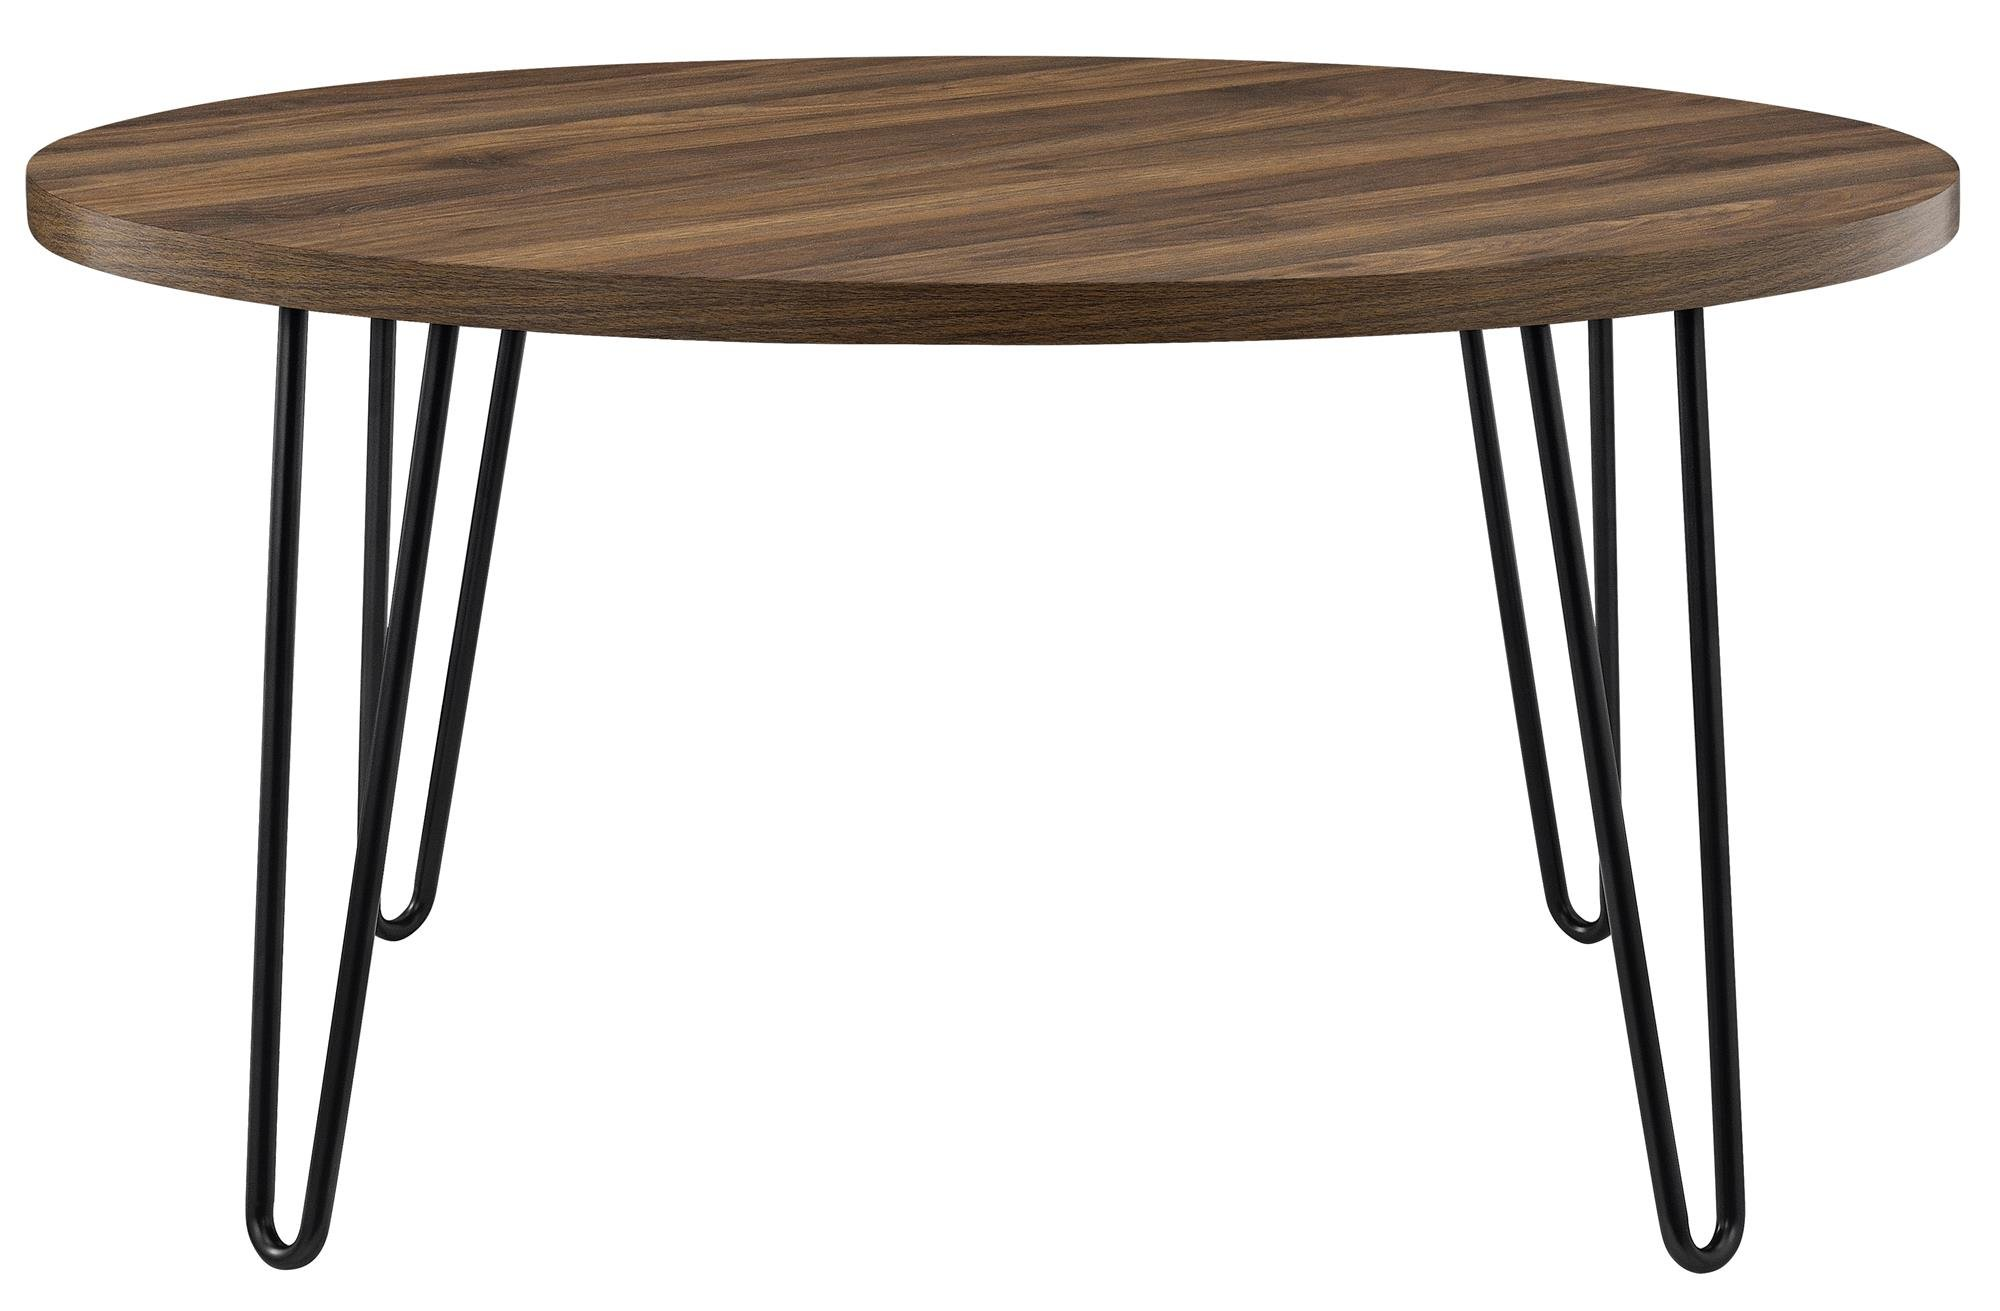 Ameriwood Home 3615222COM Owen Retro Coffee Table, Walnut by Ameriwood Home (Image #5)